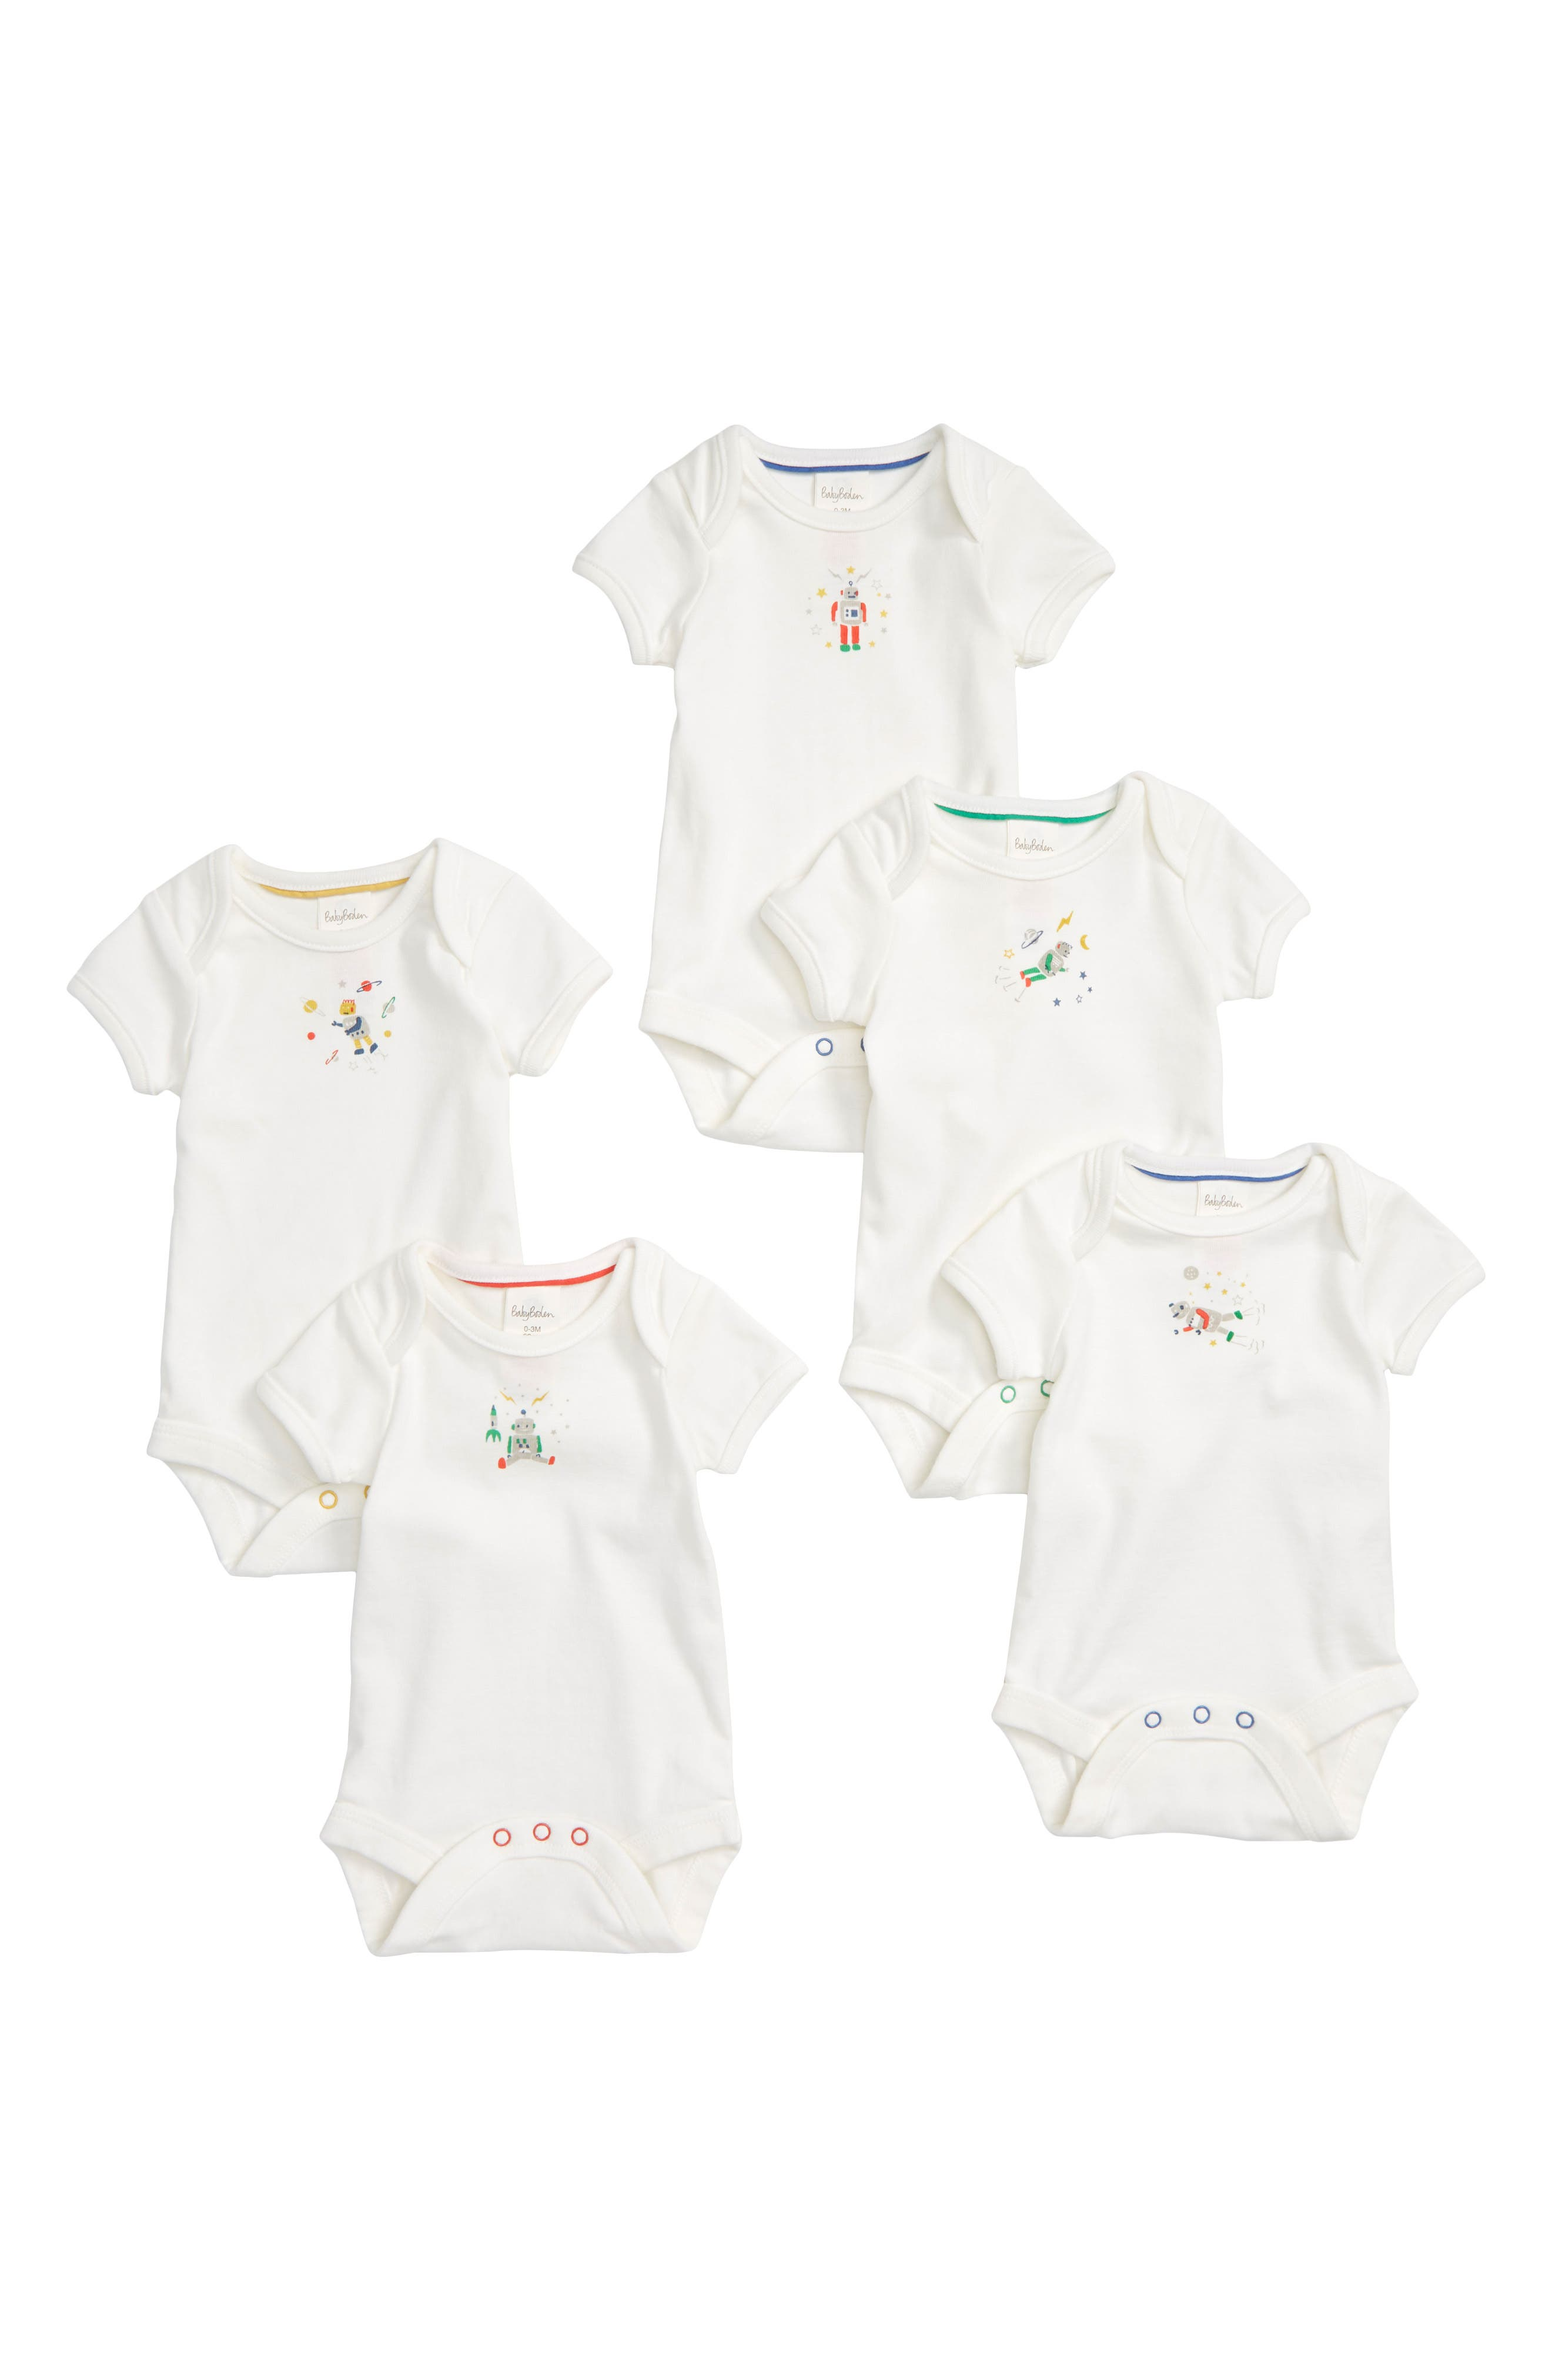 MINI BODEN, Robot 5-Pack Organic Cotton Bodysuits, Main thumbnail 1, color, 186